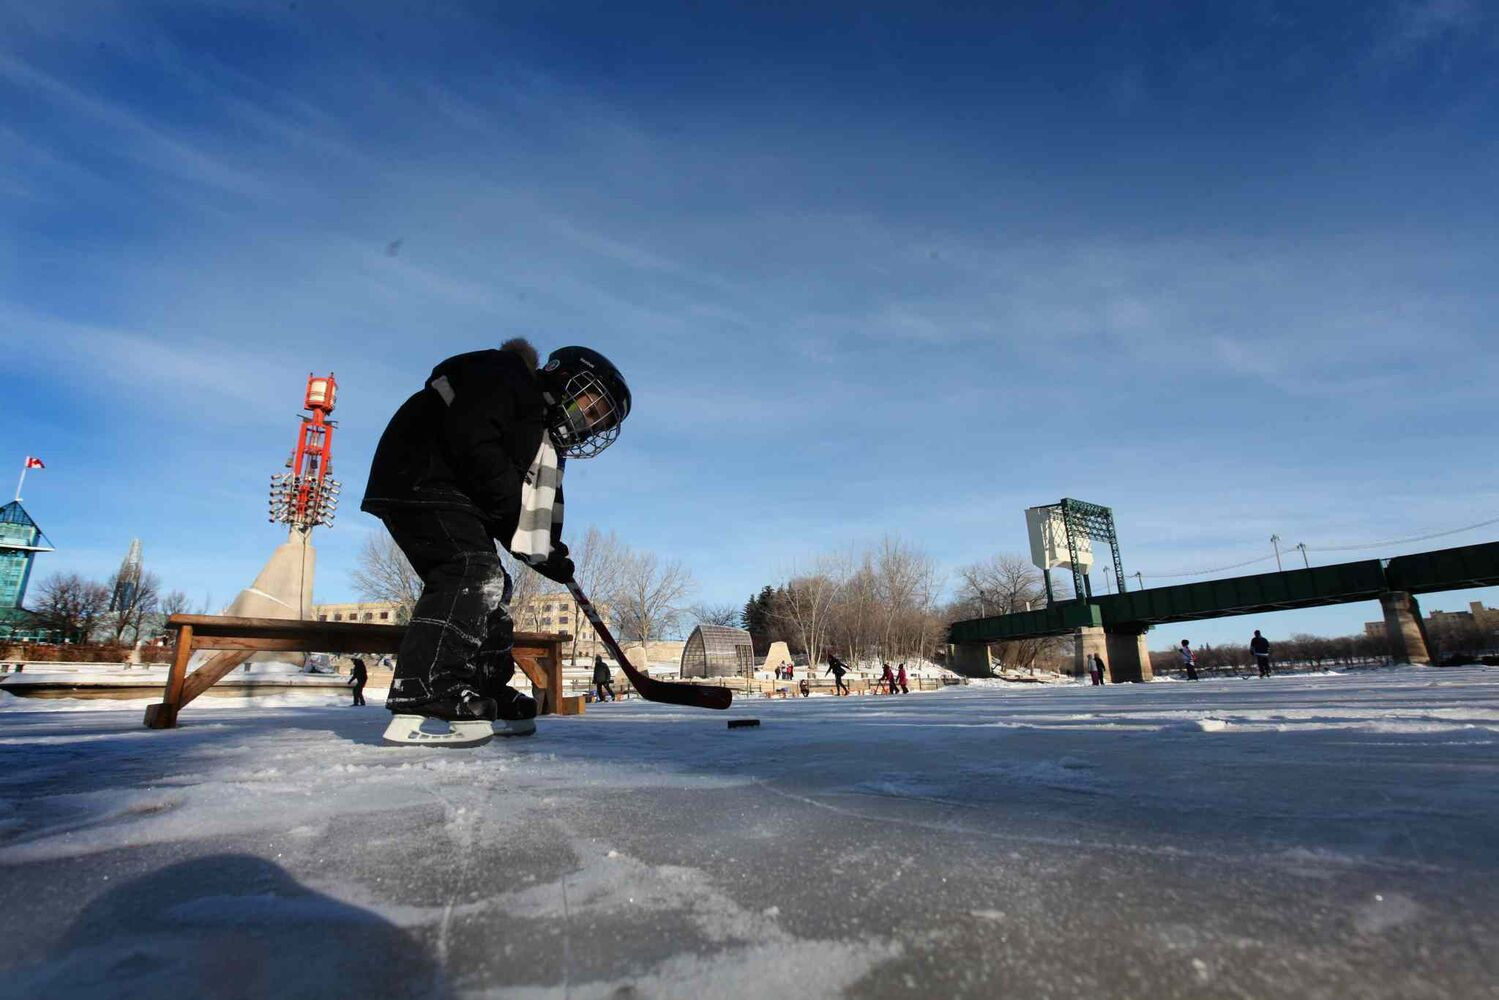 Four-year-old Jack Springer didn't seem to mind the cold as he played hockey on the new rink on the Assiniboine River Thursday with his dad.   (Ruth Bonneville / Winnipeg Free Press)